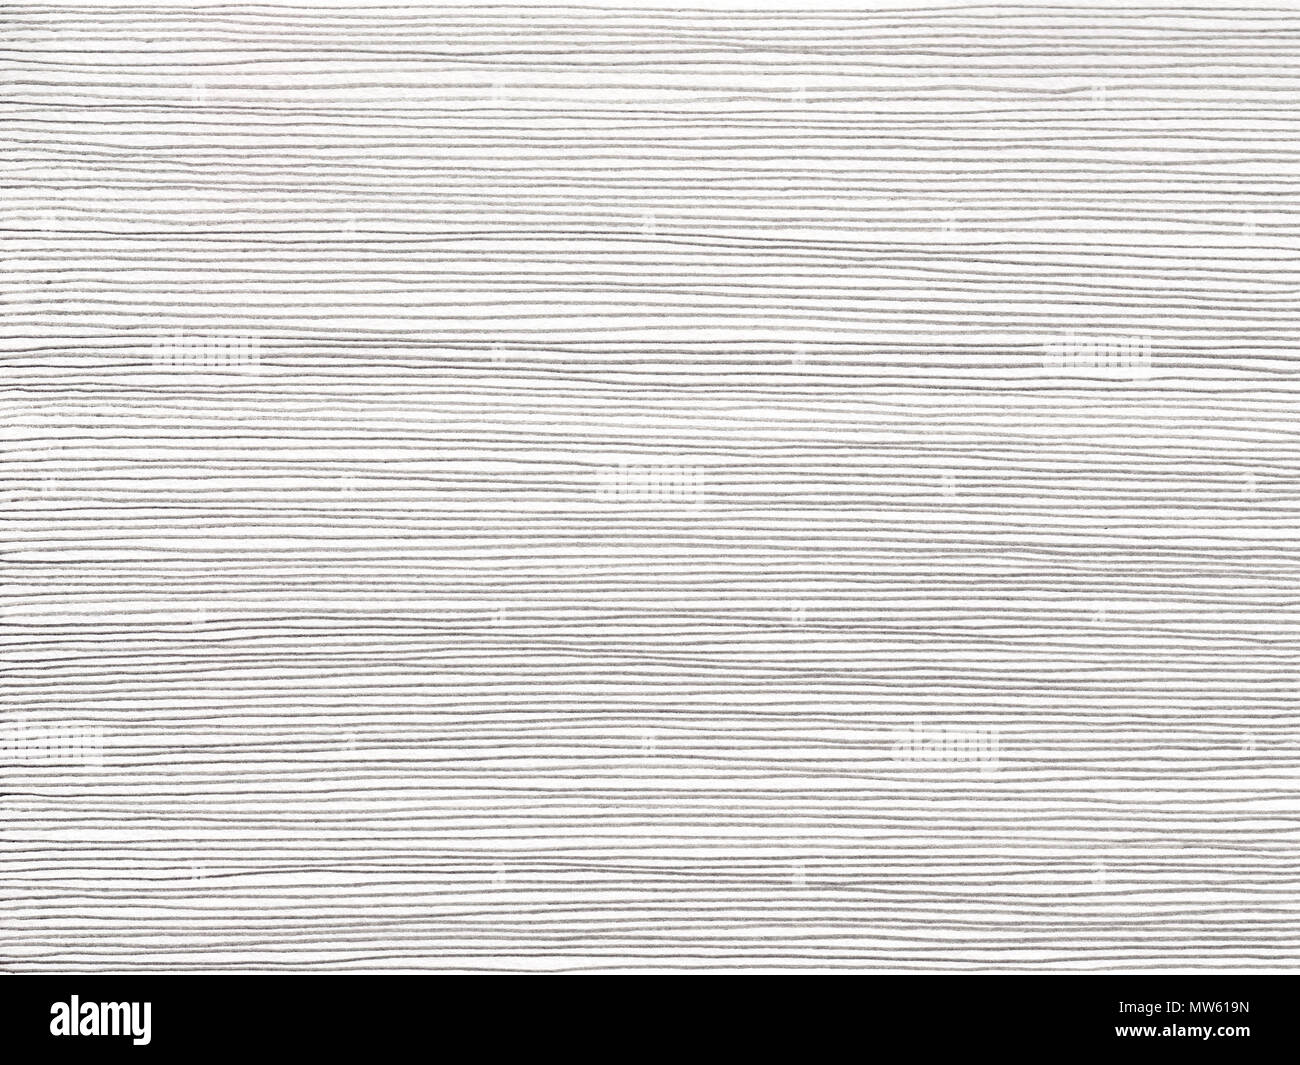 A background texture scanned from an original pencil drawing of closely spaced fine horizontal stripes